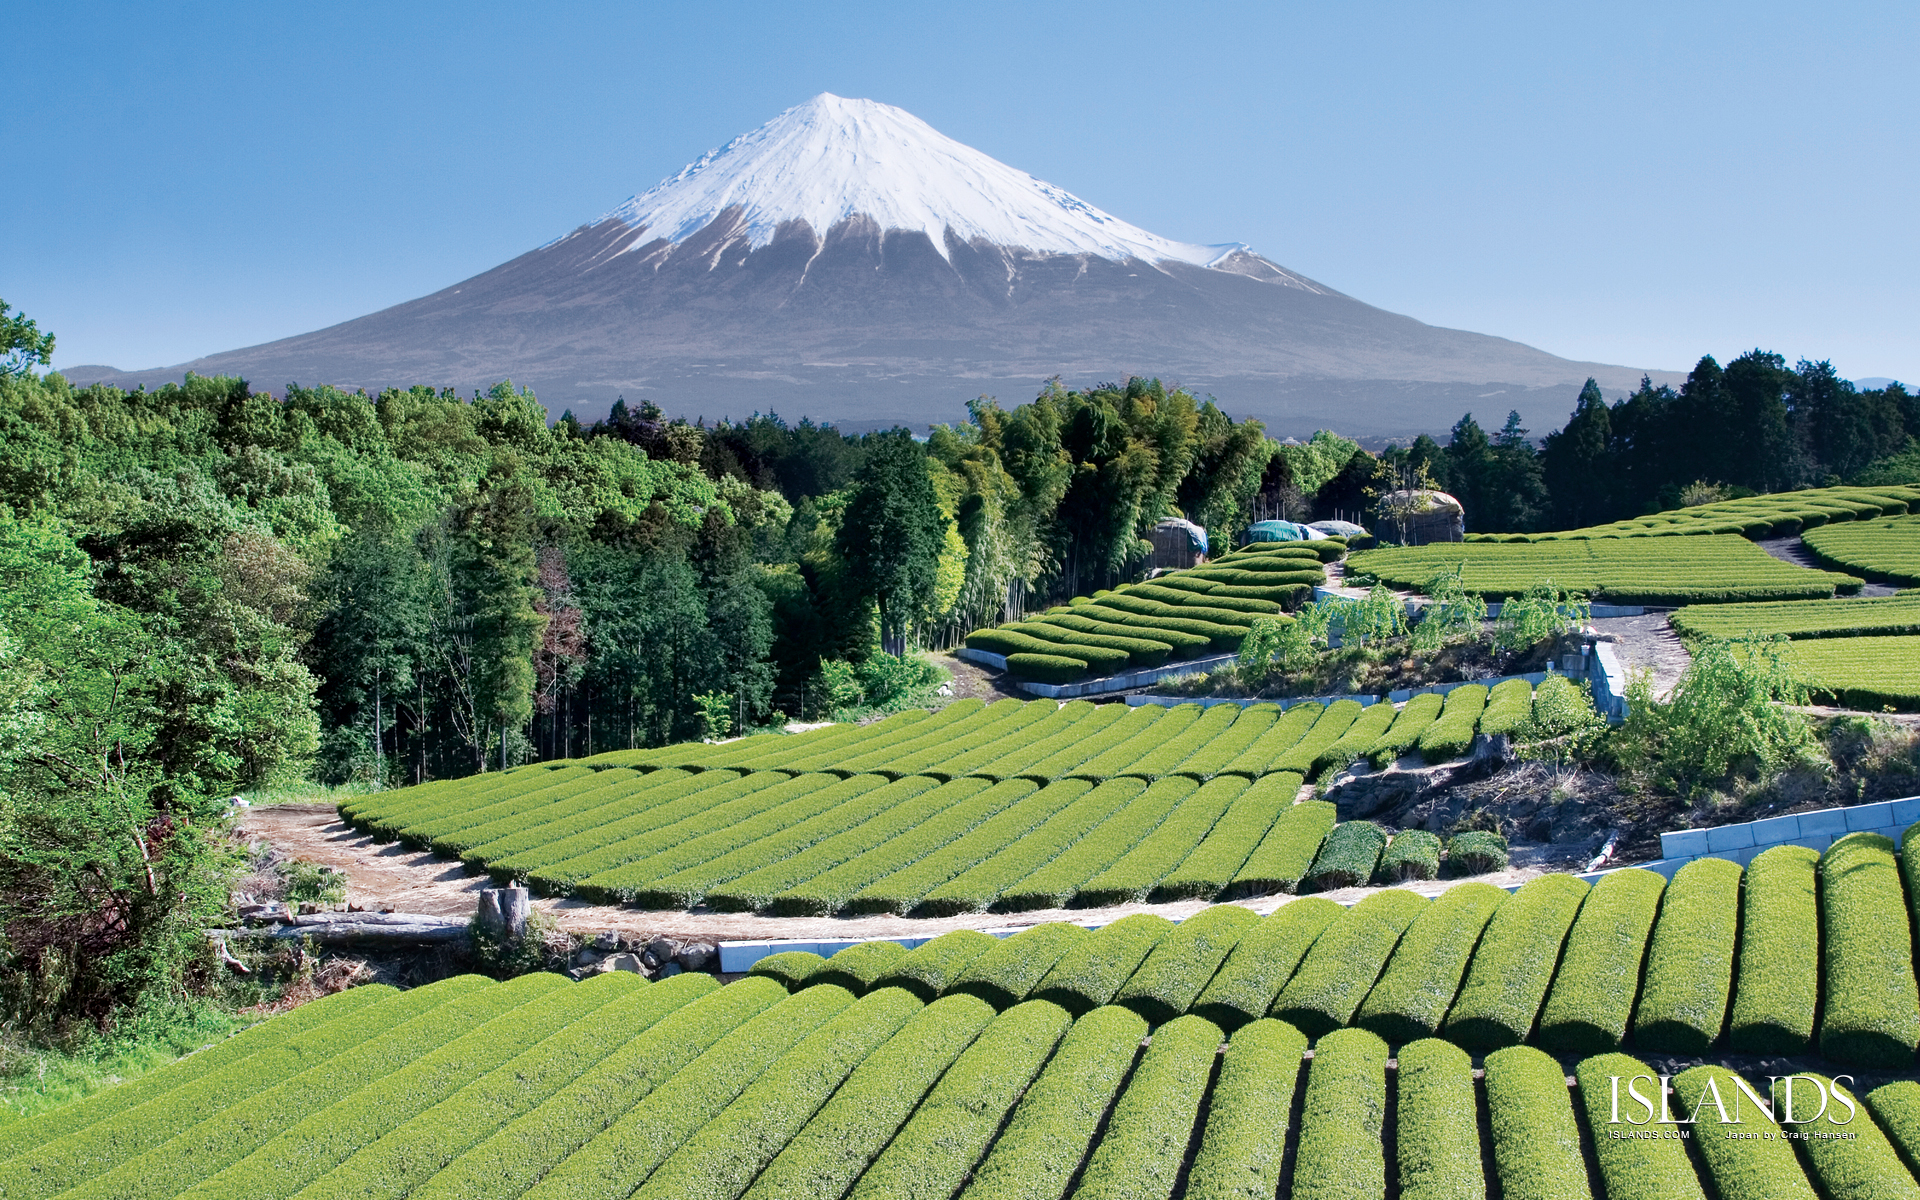 Fuji Japan Wallpaper High Resolution